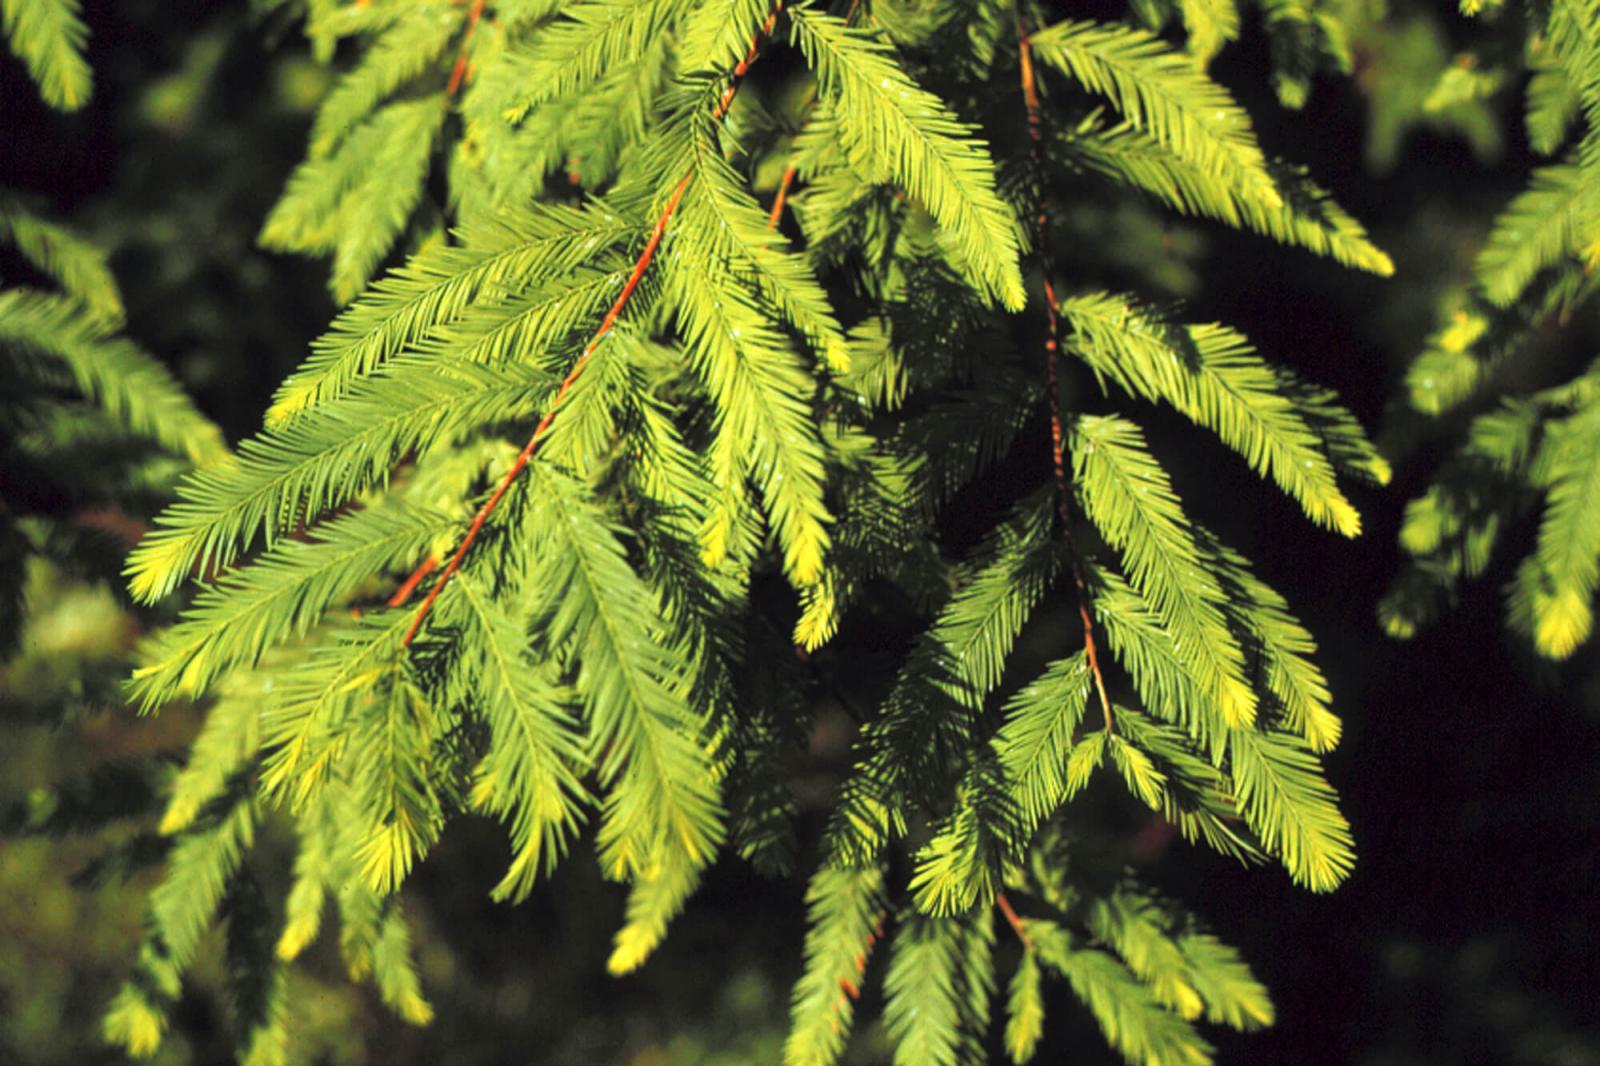 Bald cypress is practical choice for urban areas